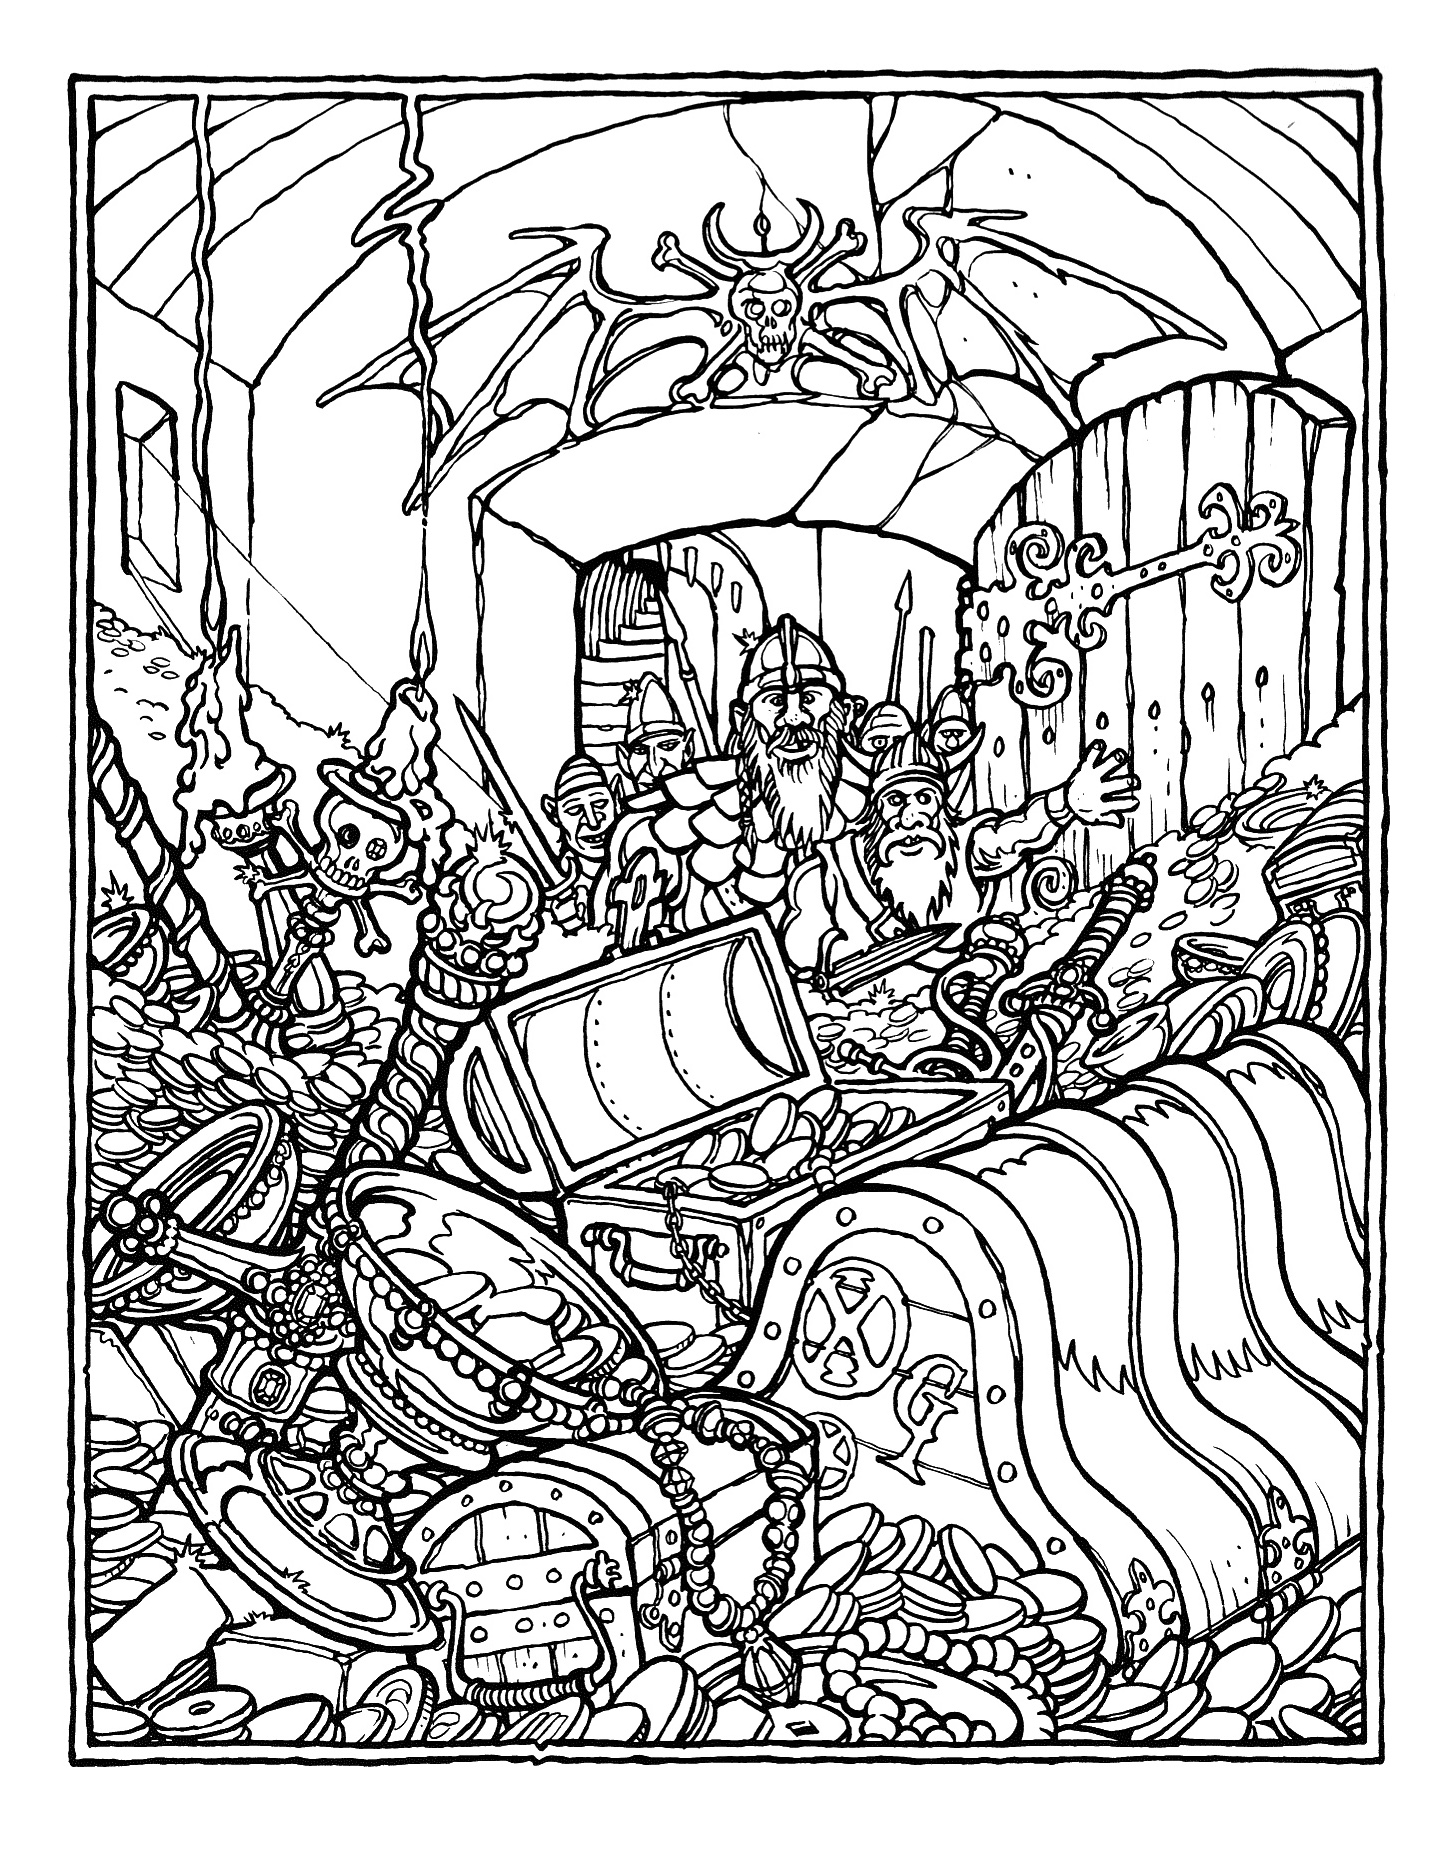 Dragon Coloring Pages For Adults Printable : MONSTER BRAINS: The Official Advanced Dungeons and Dragons Coloring Book Illustrated by Greg ...